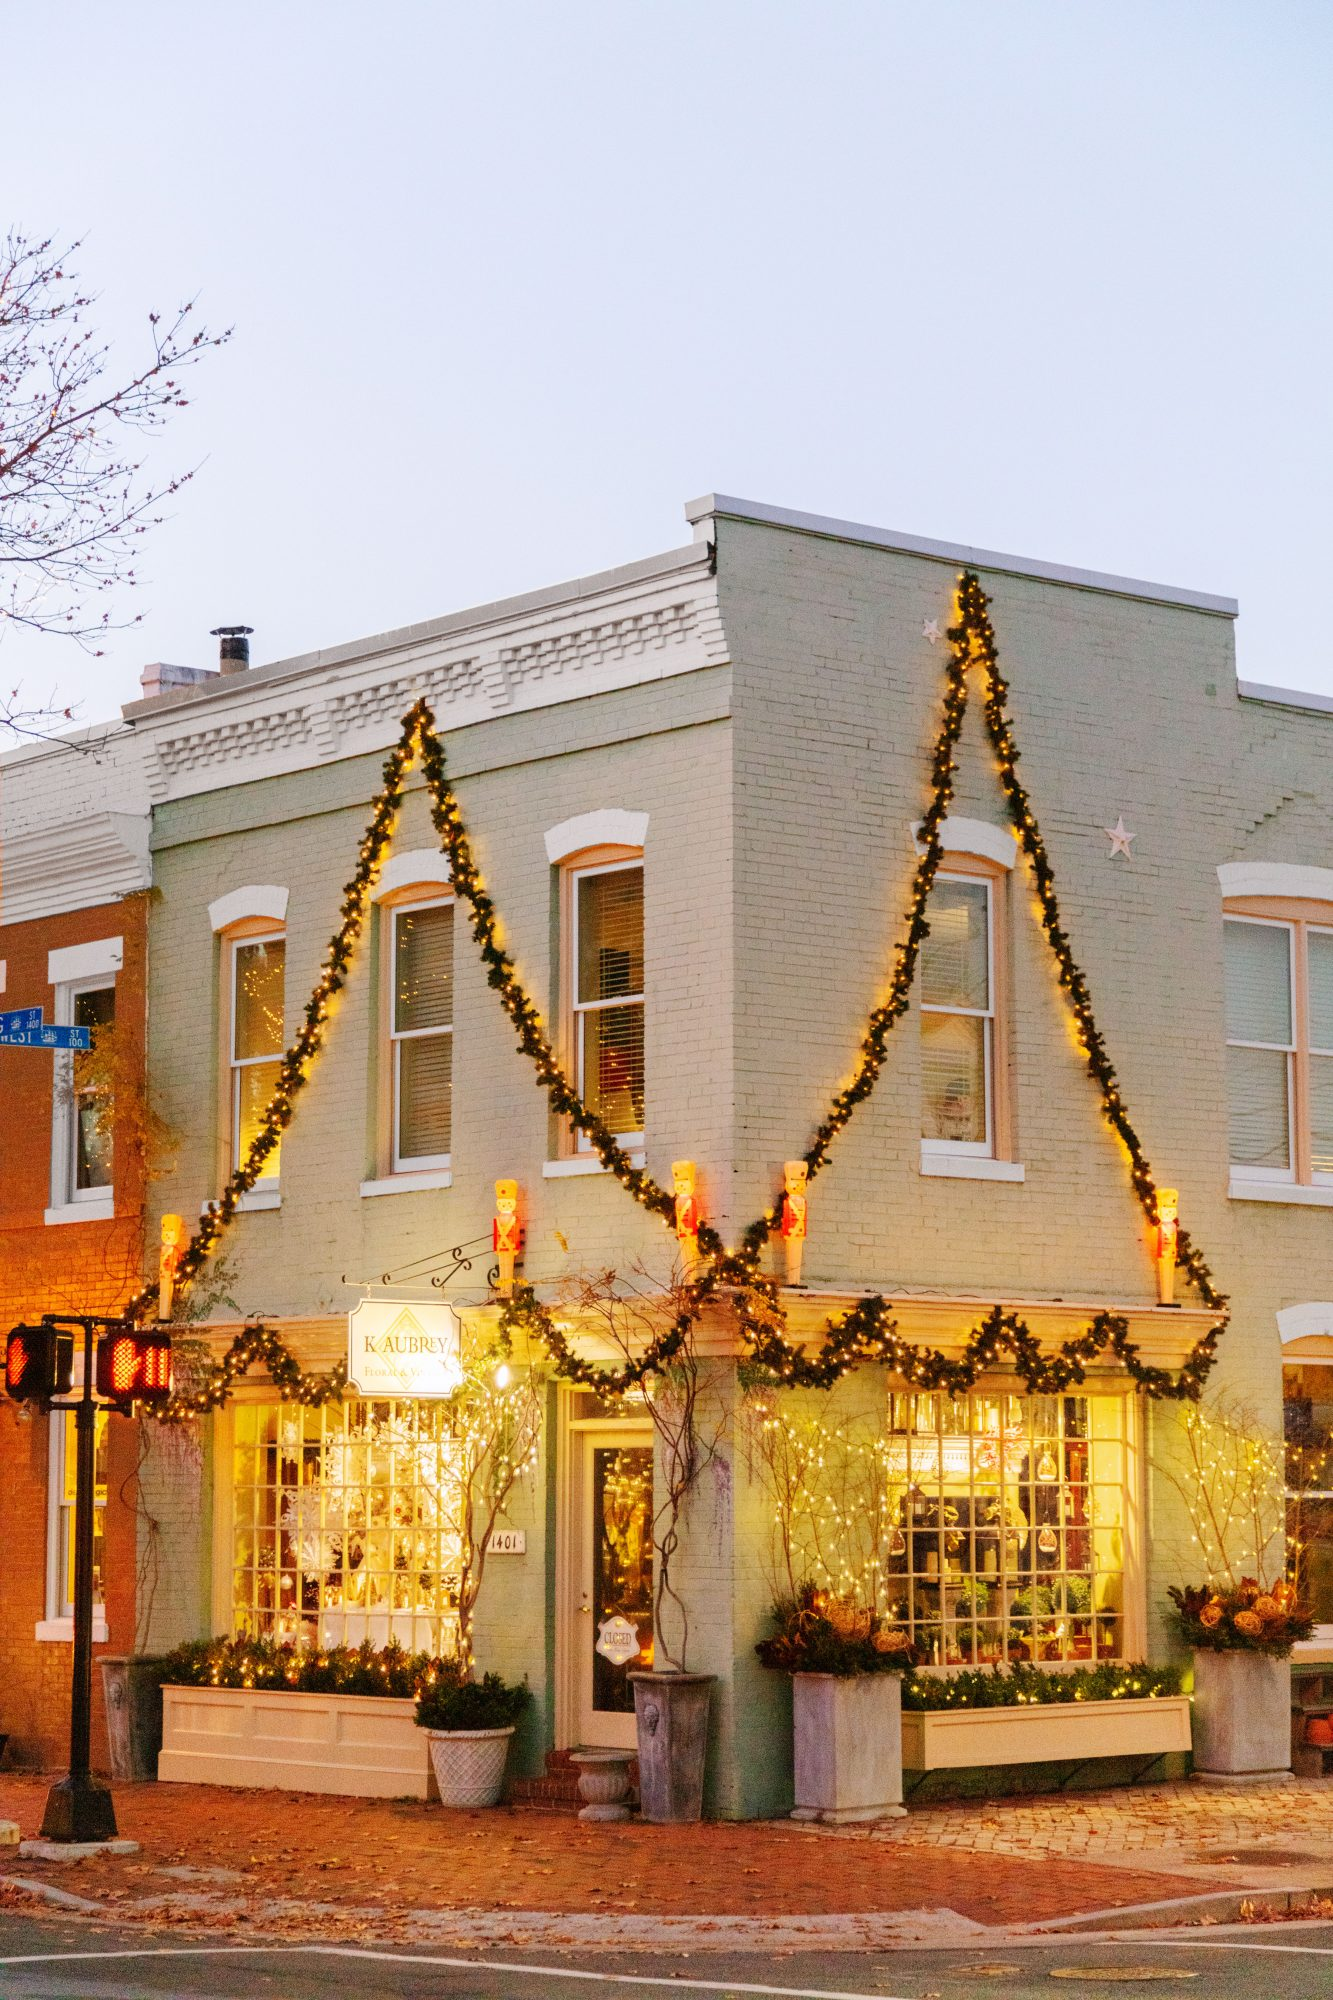 Shops decorated for Christmas on King Street in Alexandria, VA